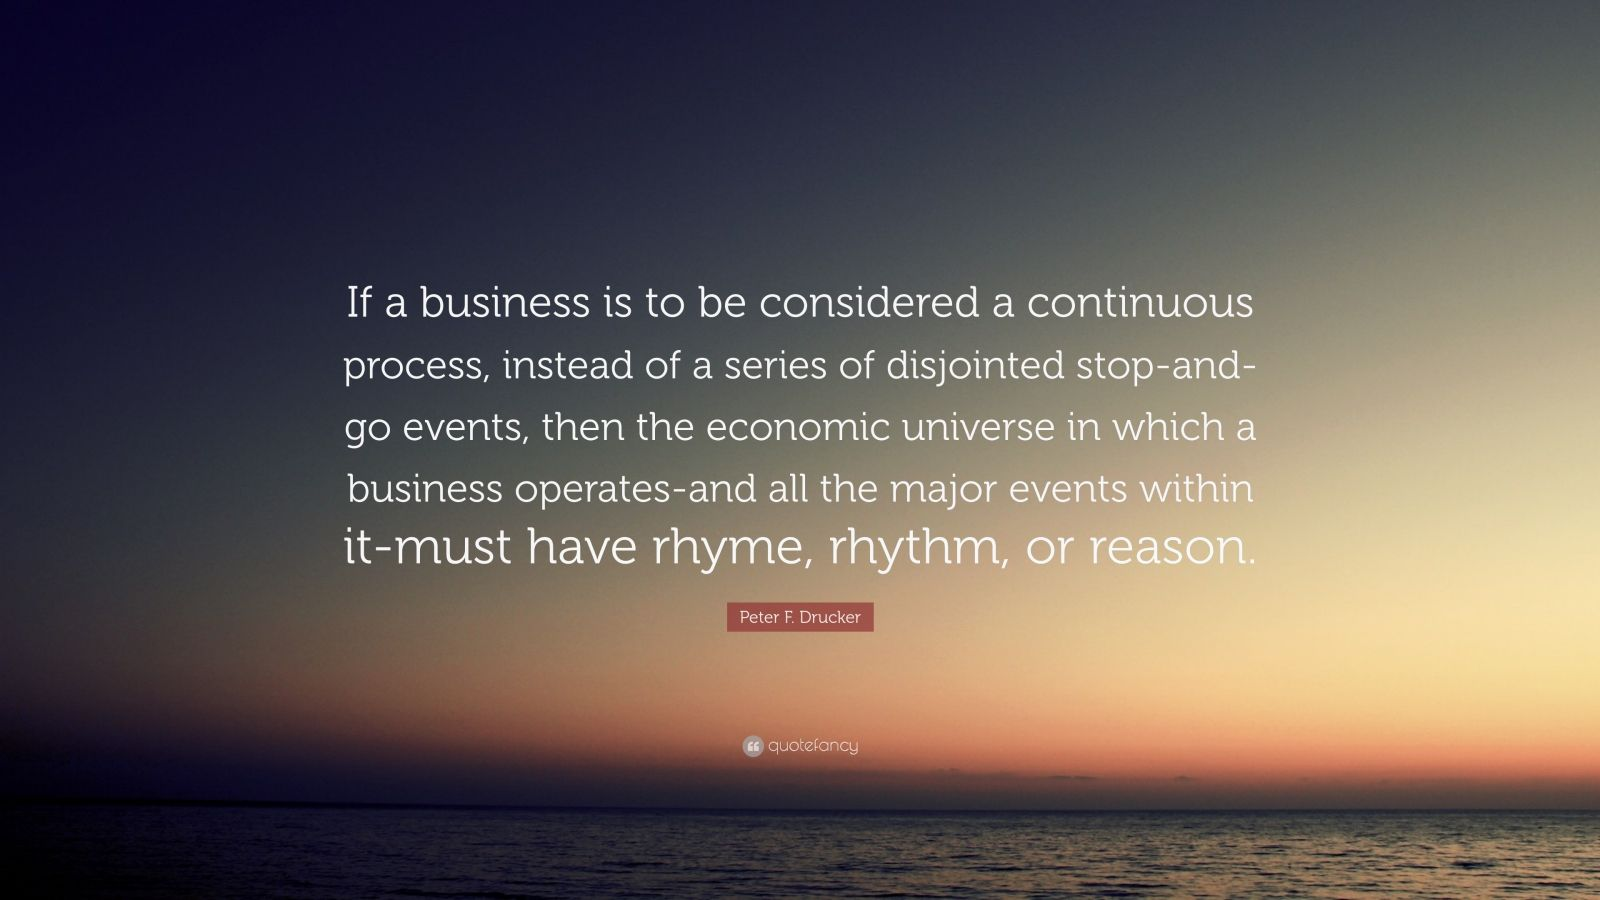 """Peter F. Drucker Quote: """"If a business is to be considered a continuous process, instead of a series of disjointed stop-and-go events, then the economic universe in which a business operates-and all the major events within it-must have rhyme, rhythm, or reason."""""""